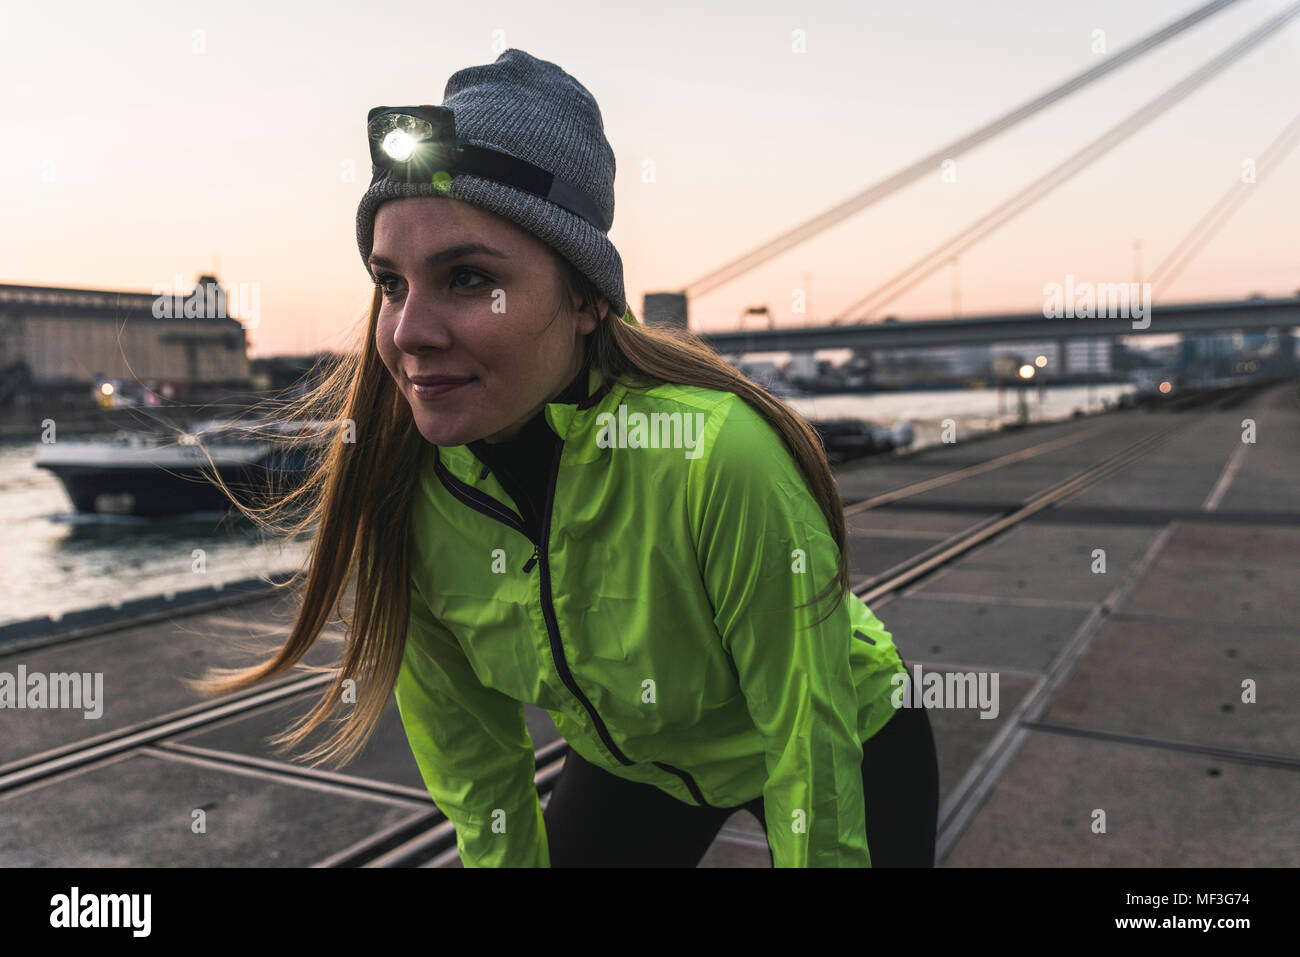 Sportive young woman with headlamp at dusk at the riverside in the city - Stock Image